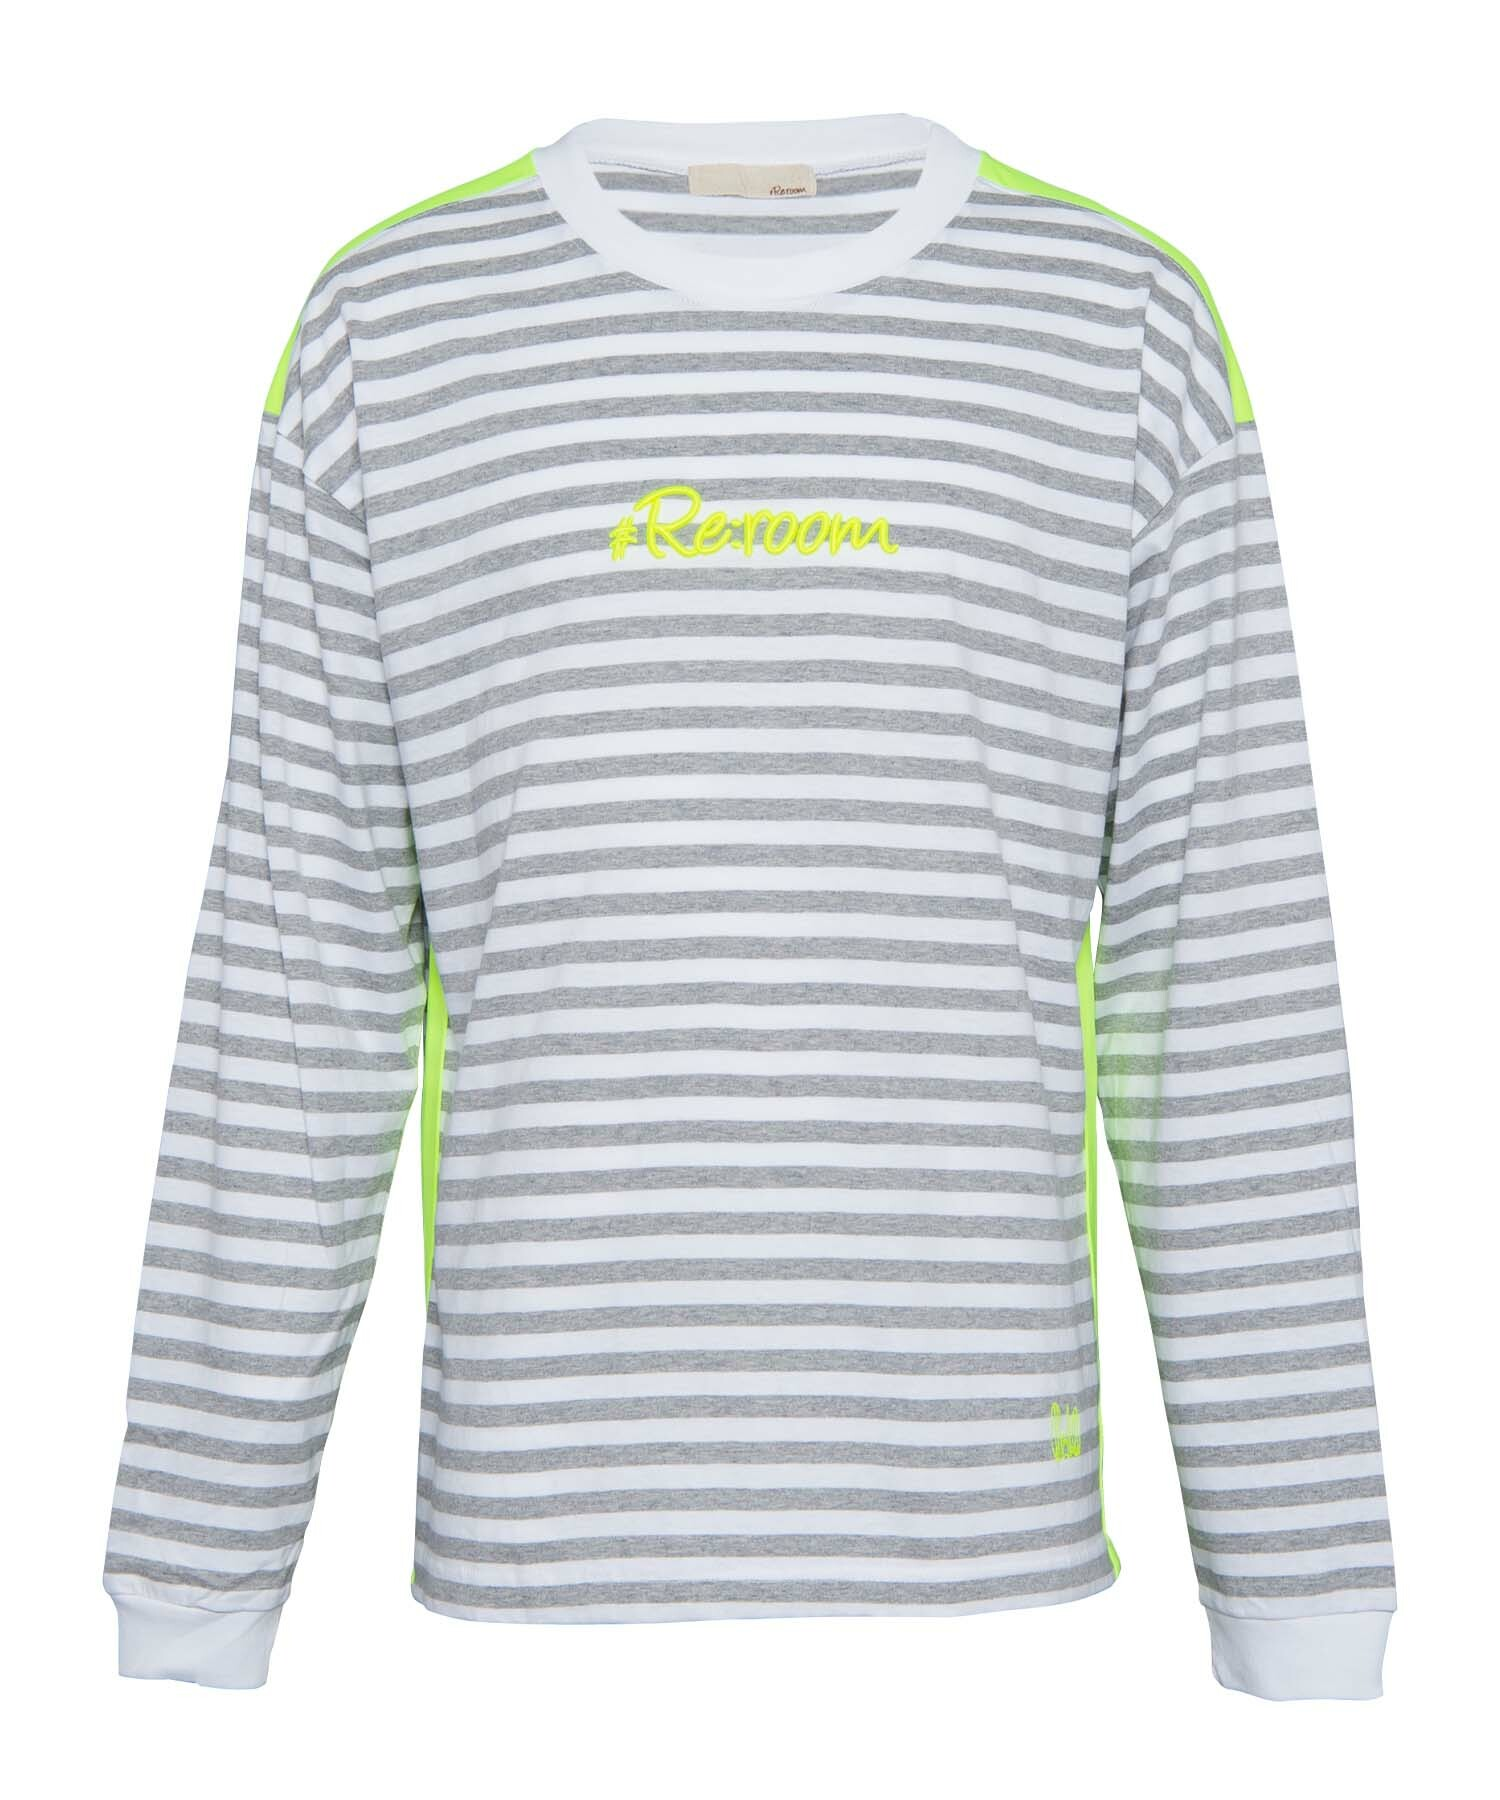 NEON 3D LOGO SIDE LINE BORDER BIG LONG SLEEVE[REC318]